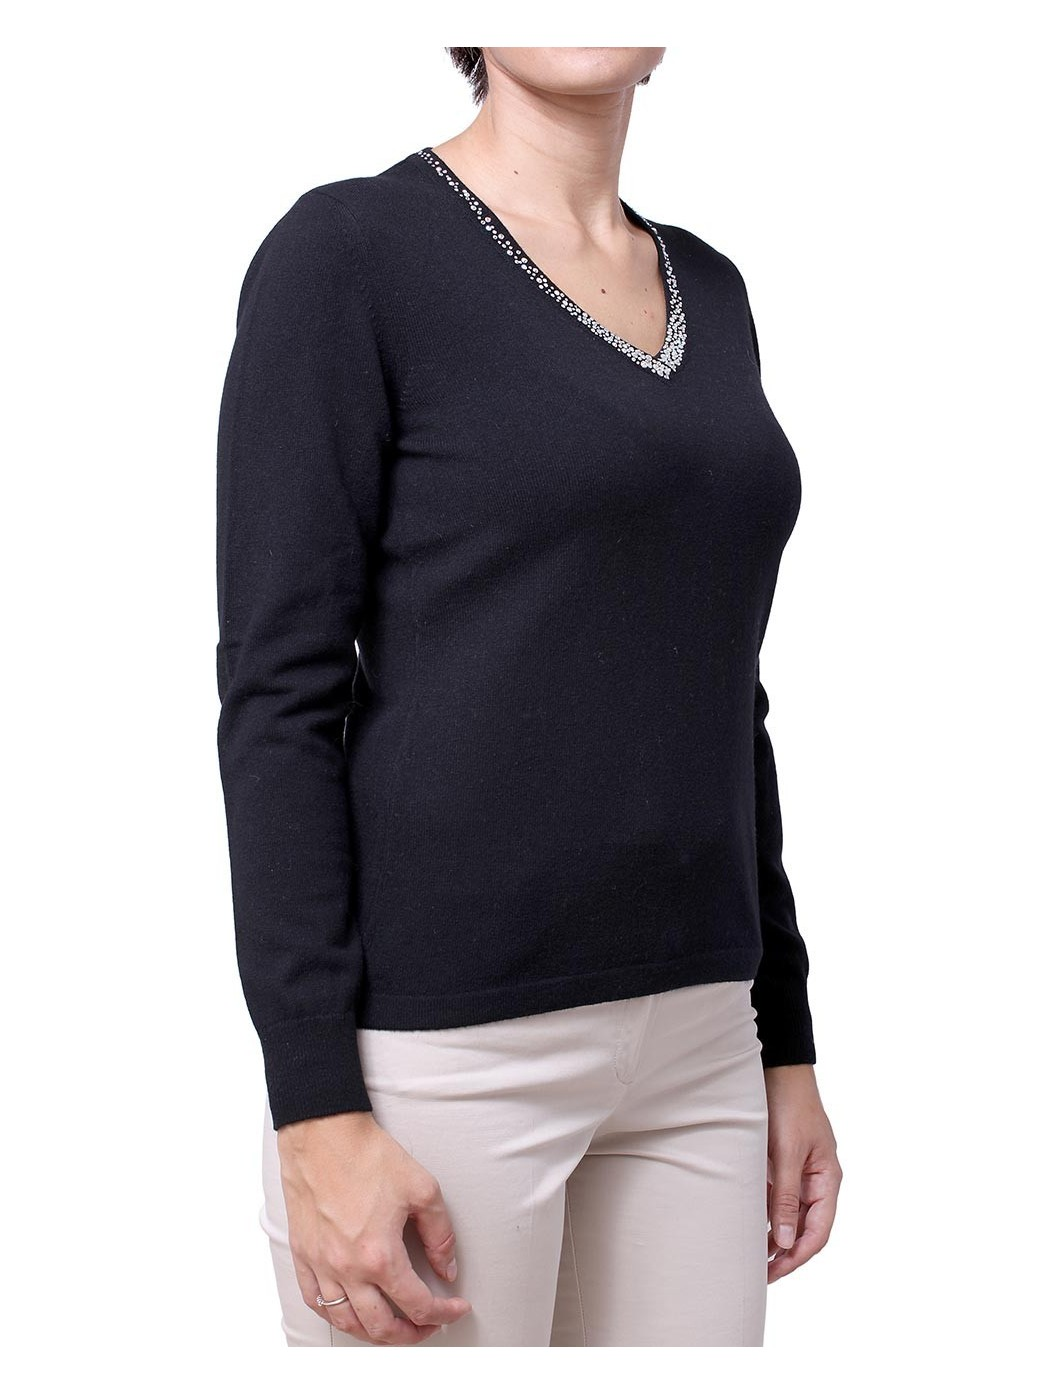 Swarovski v-neck sweater